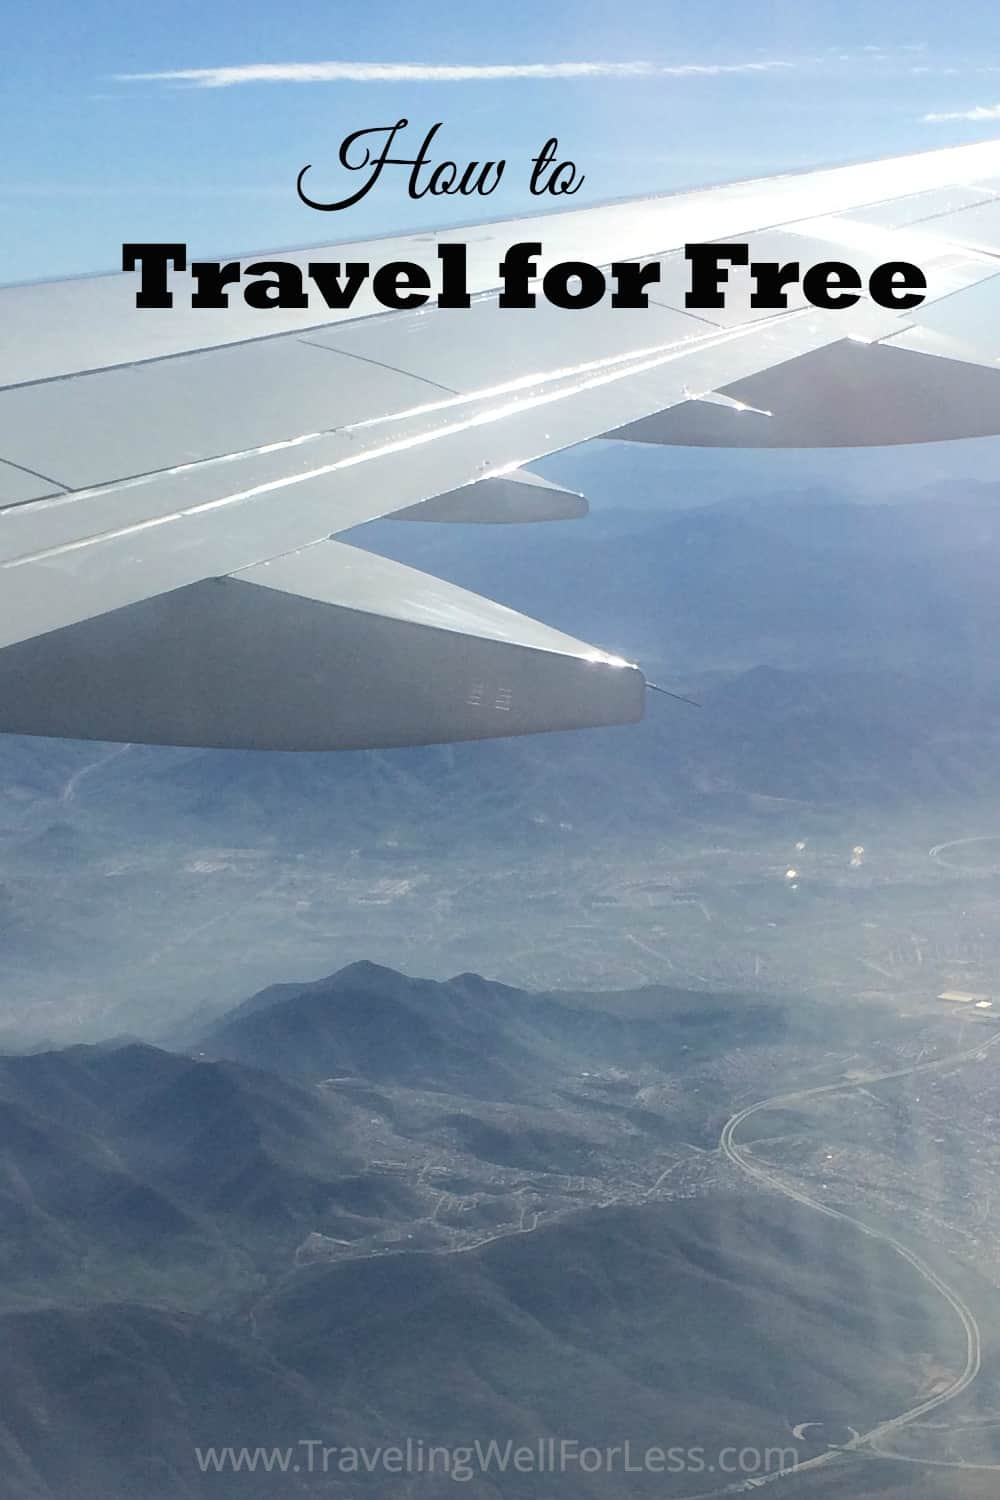 Tricks on how to get free travel. Here are 8 ways to travel for free plus 2 ways to get paid to travel. Traveling Well For Less